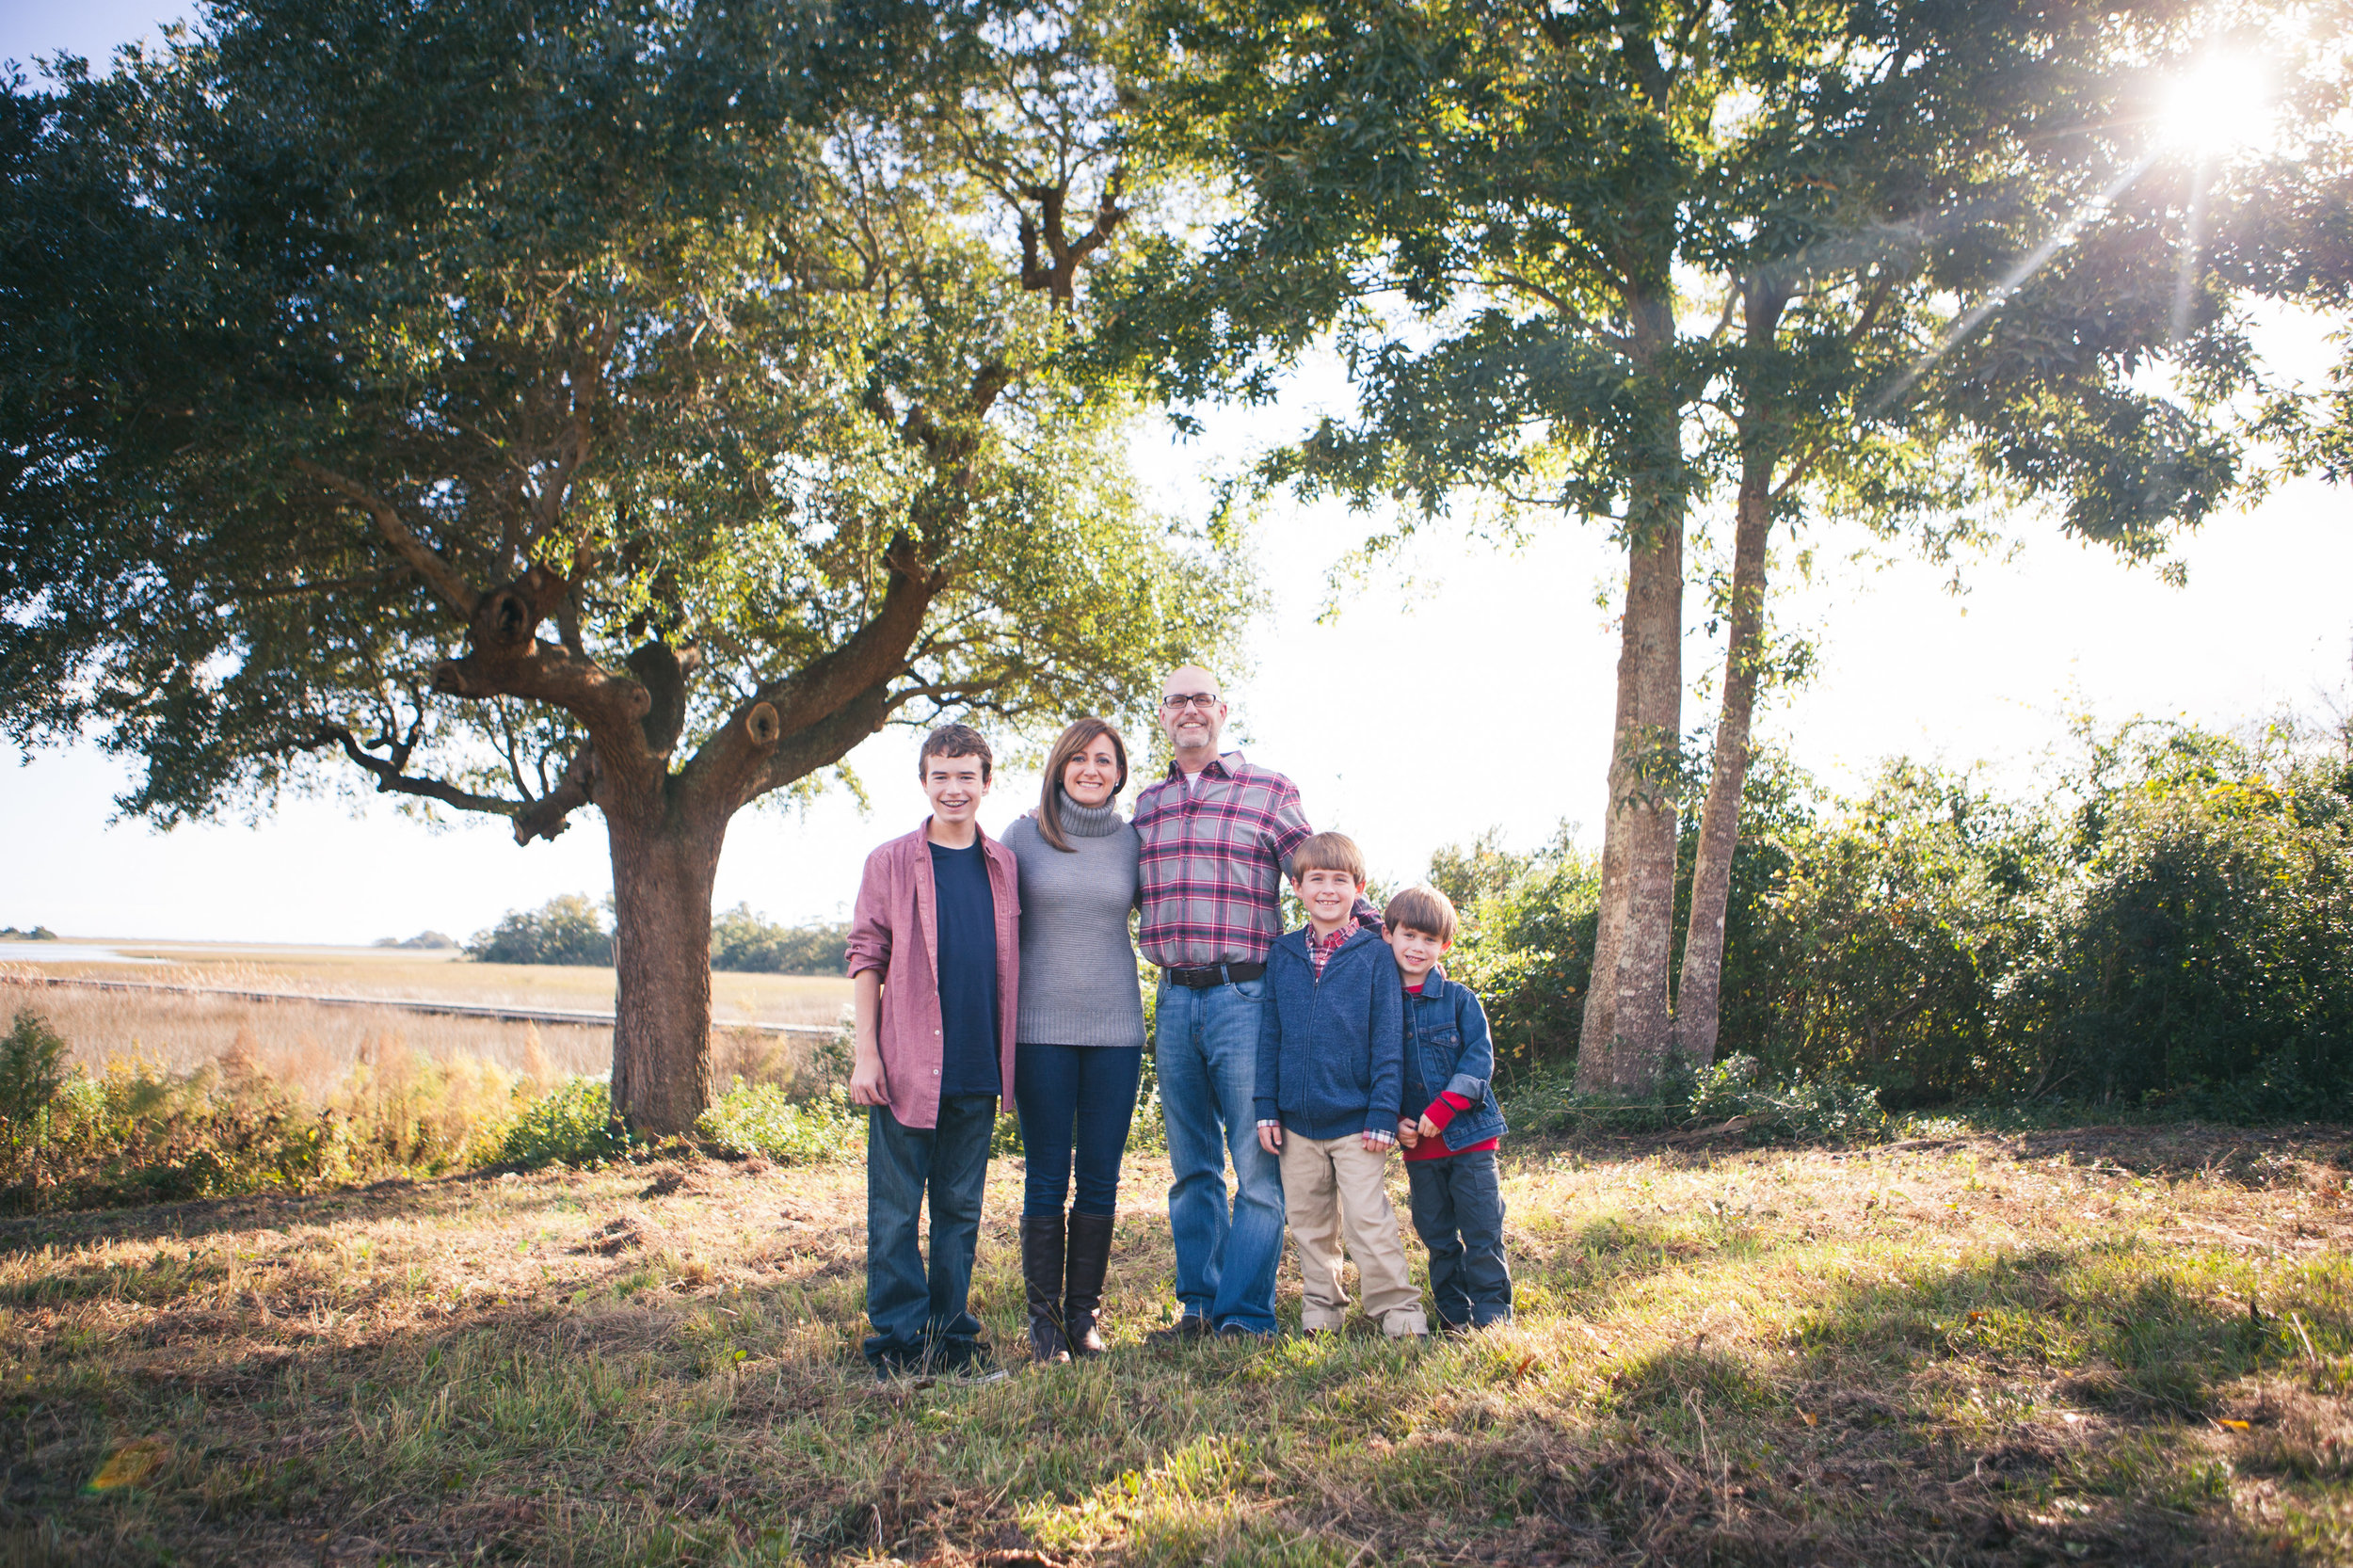 Woodfill Family-High Res for Print-0003.jpg